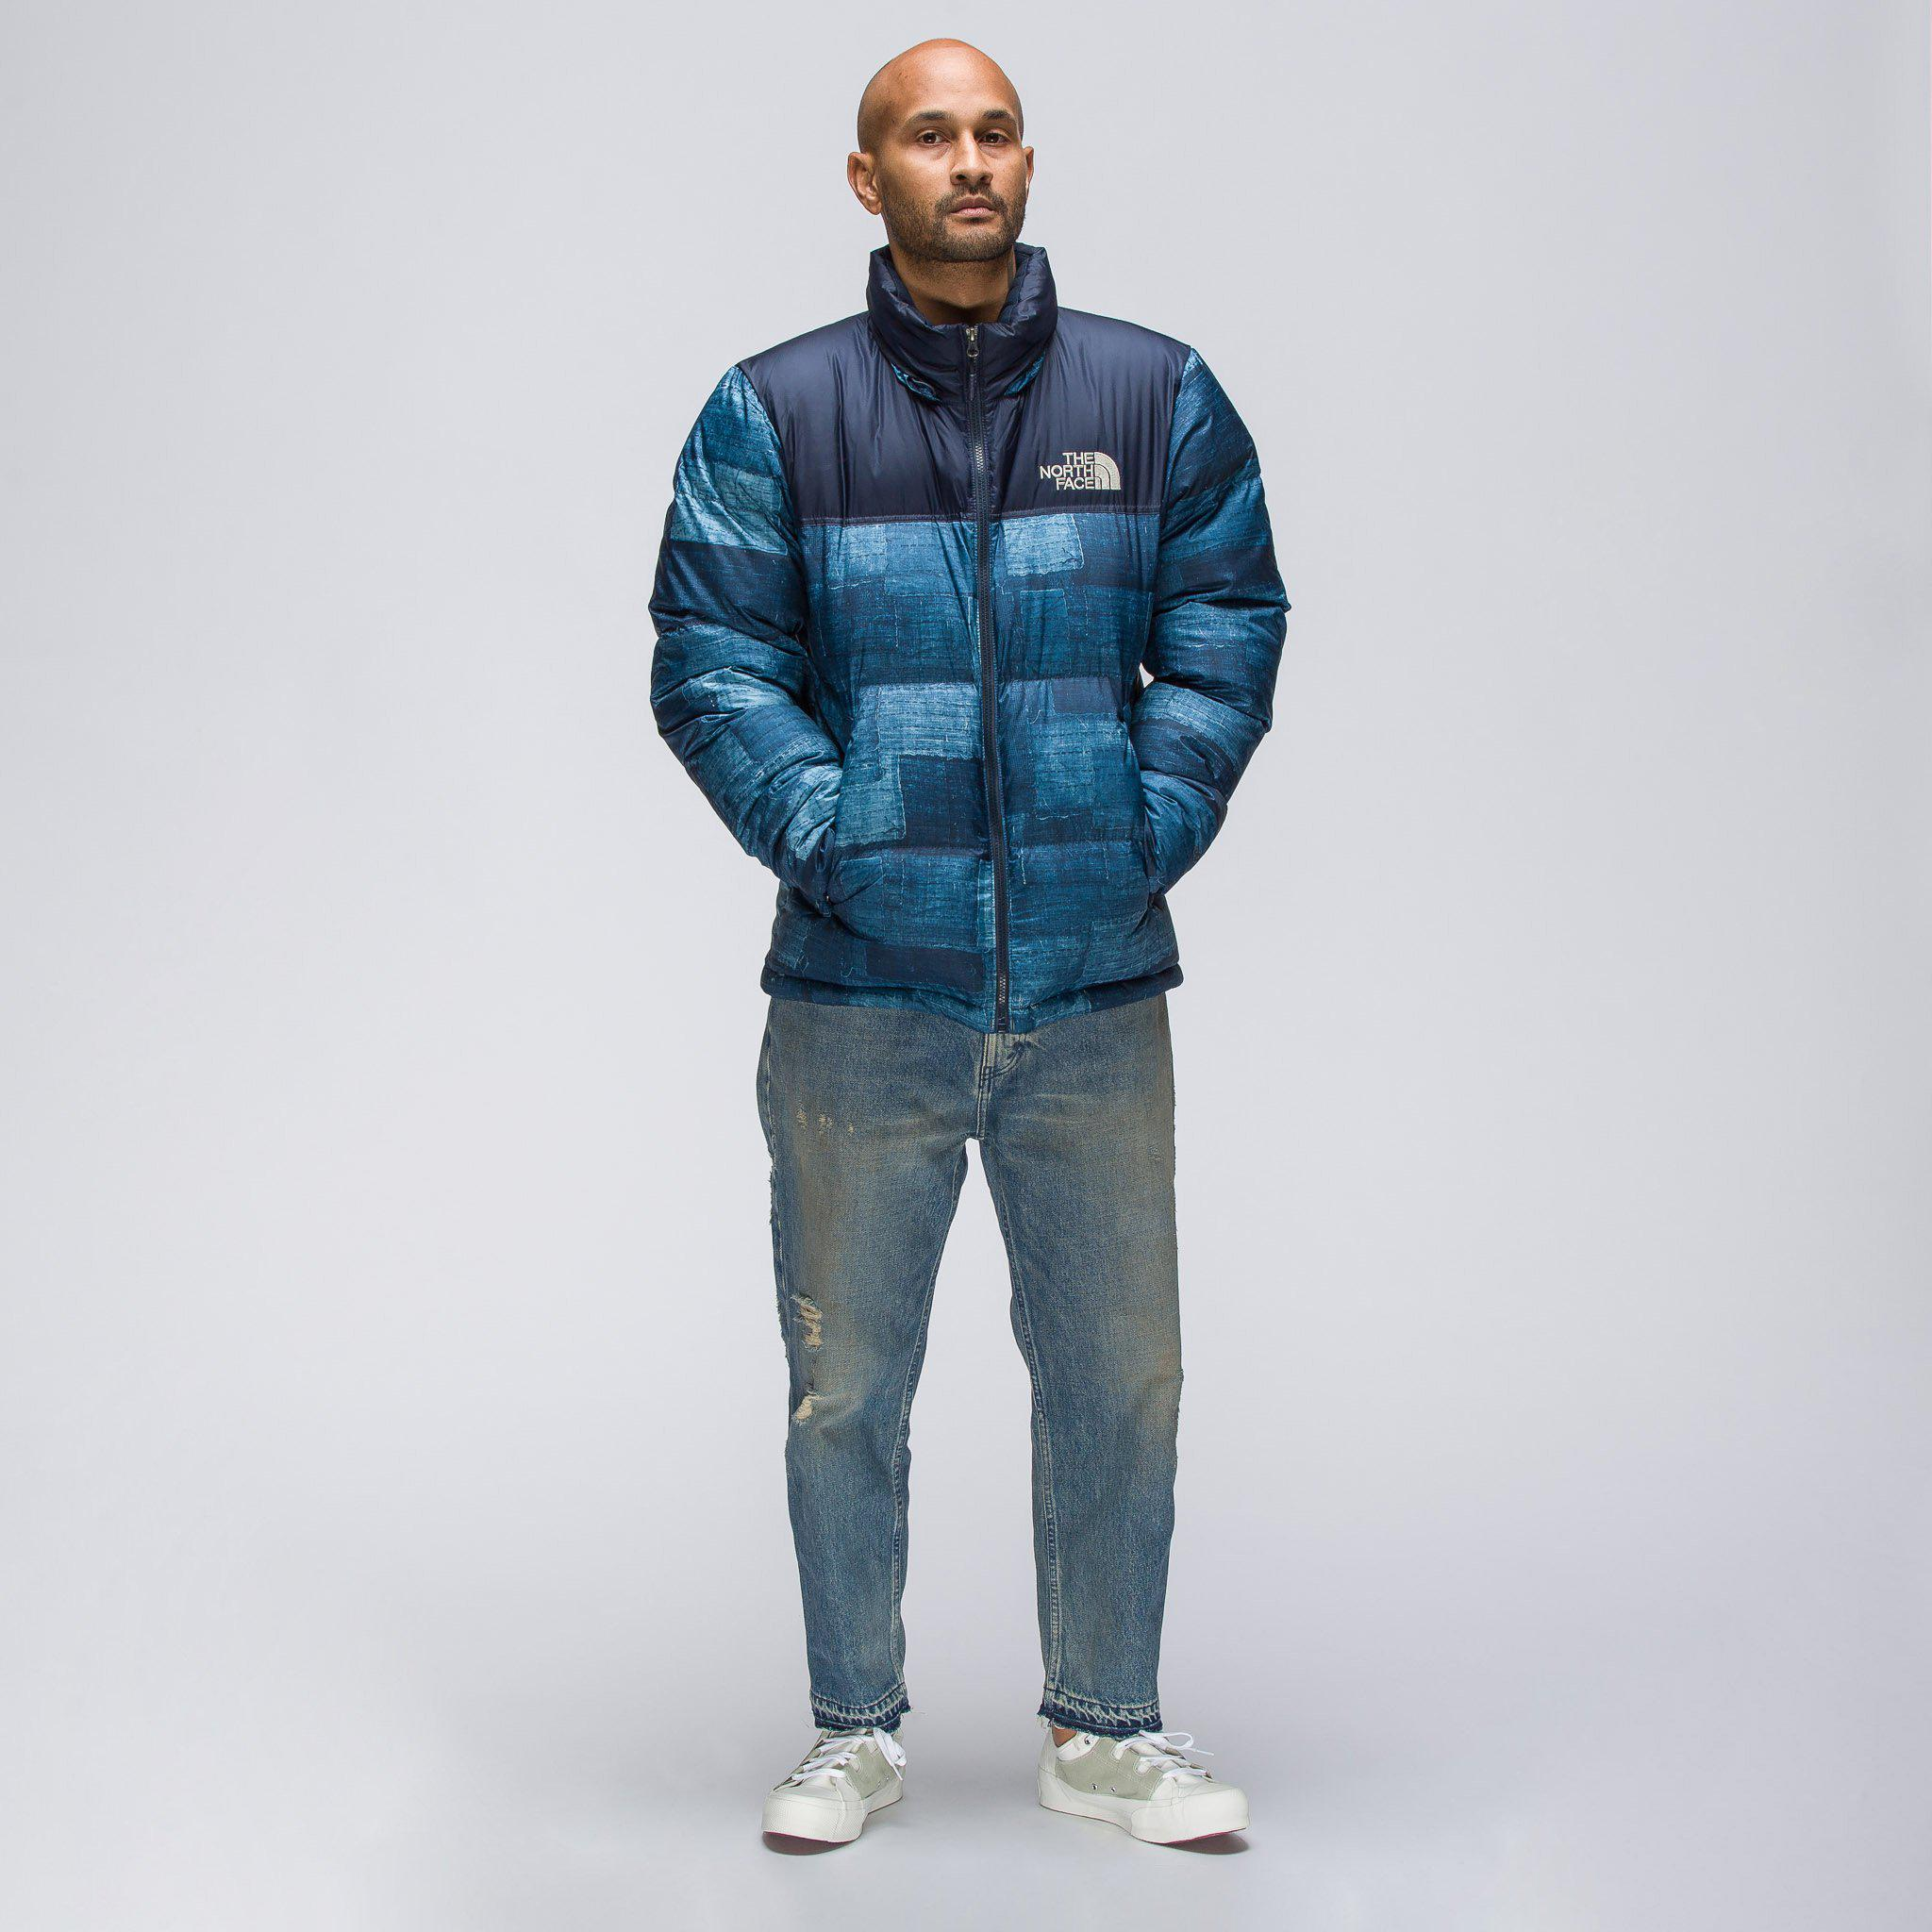 7f4b7d6b4ef3 Lyst - The North Face Novelty Nuptse Jacket In Navy in Blue for Men